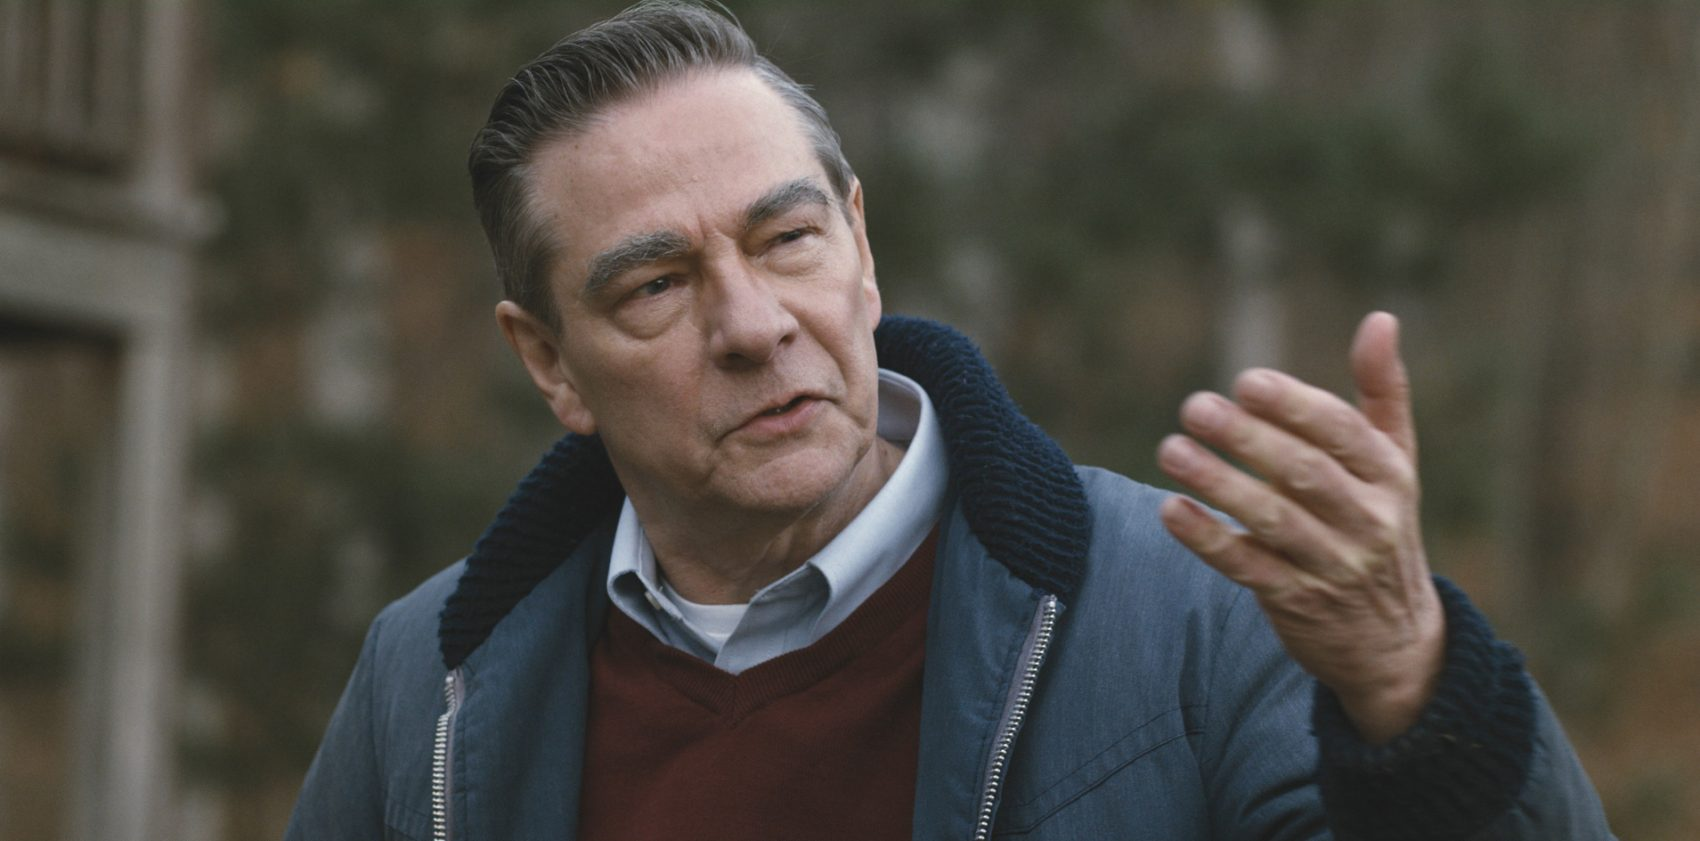 """Oscar-winner and South Shore resident Chris Cooper plays J.D. Salinger in """"Coming Through the Rye."""" (Courtesy)"""